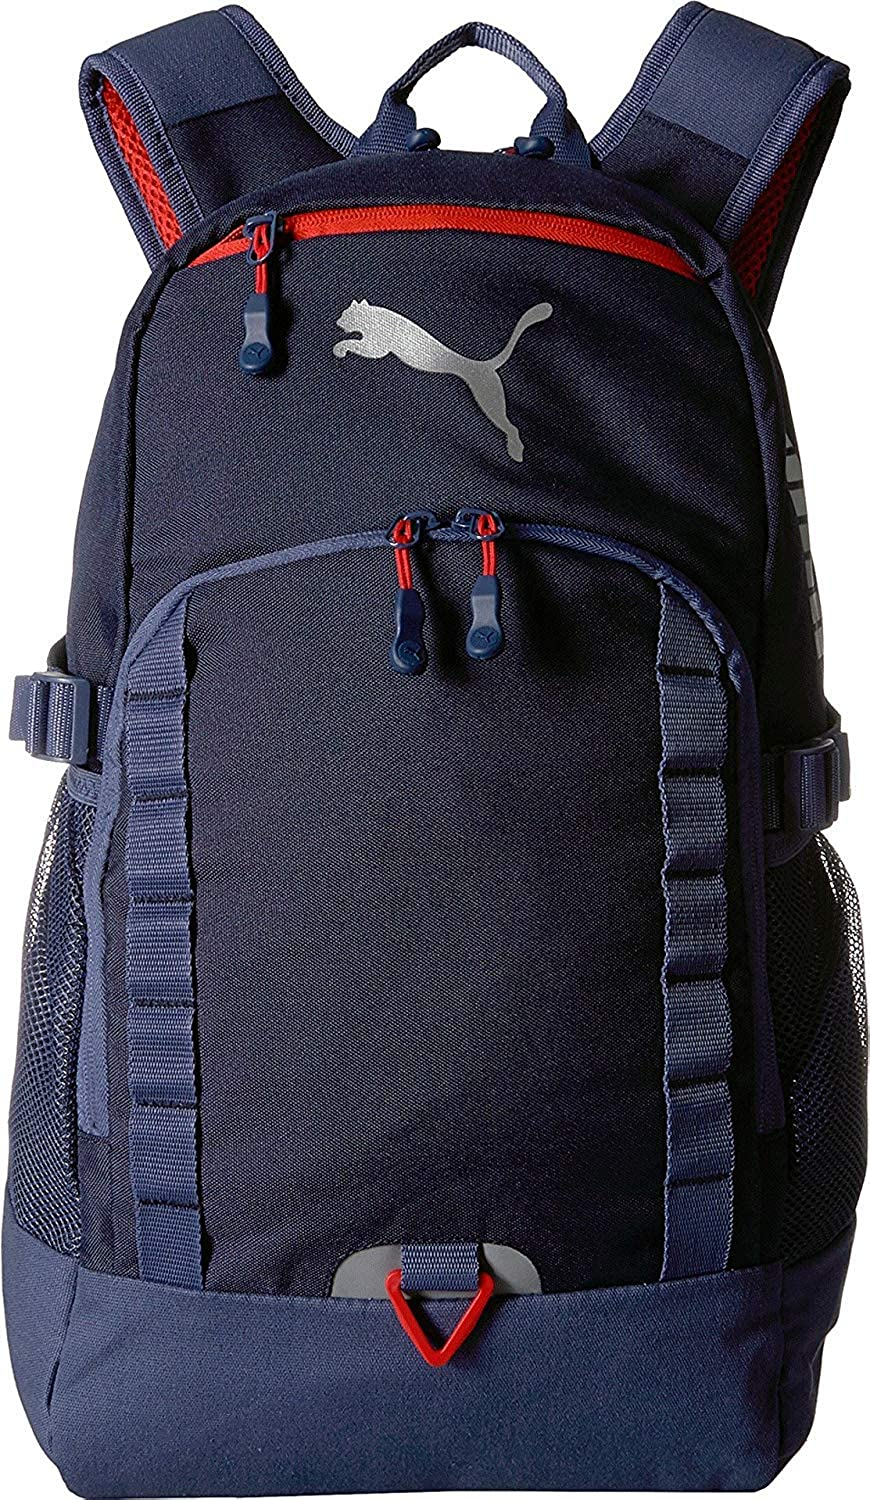 PUMA Evercat Fraction Backpack Navy One Size